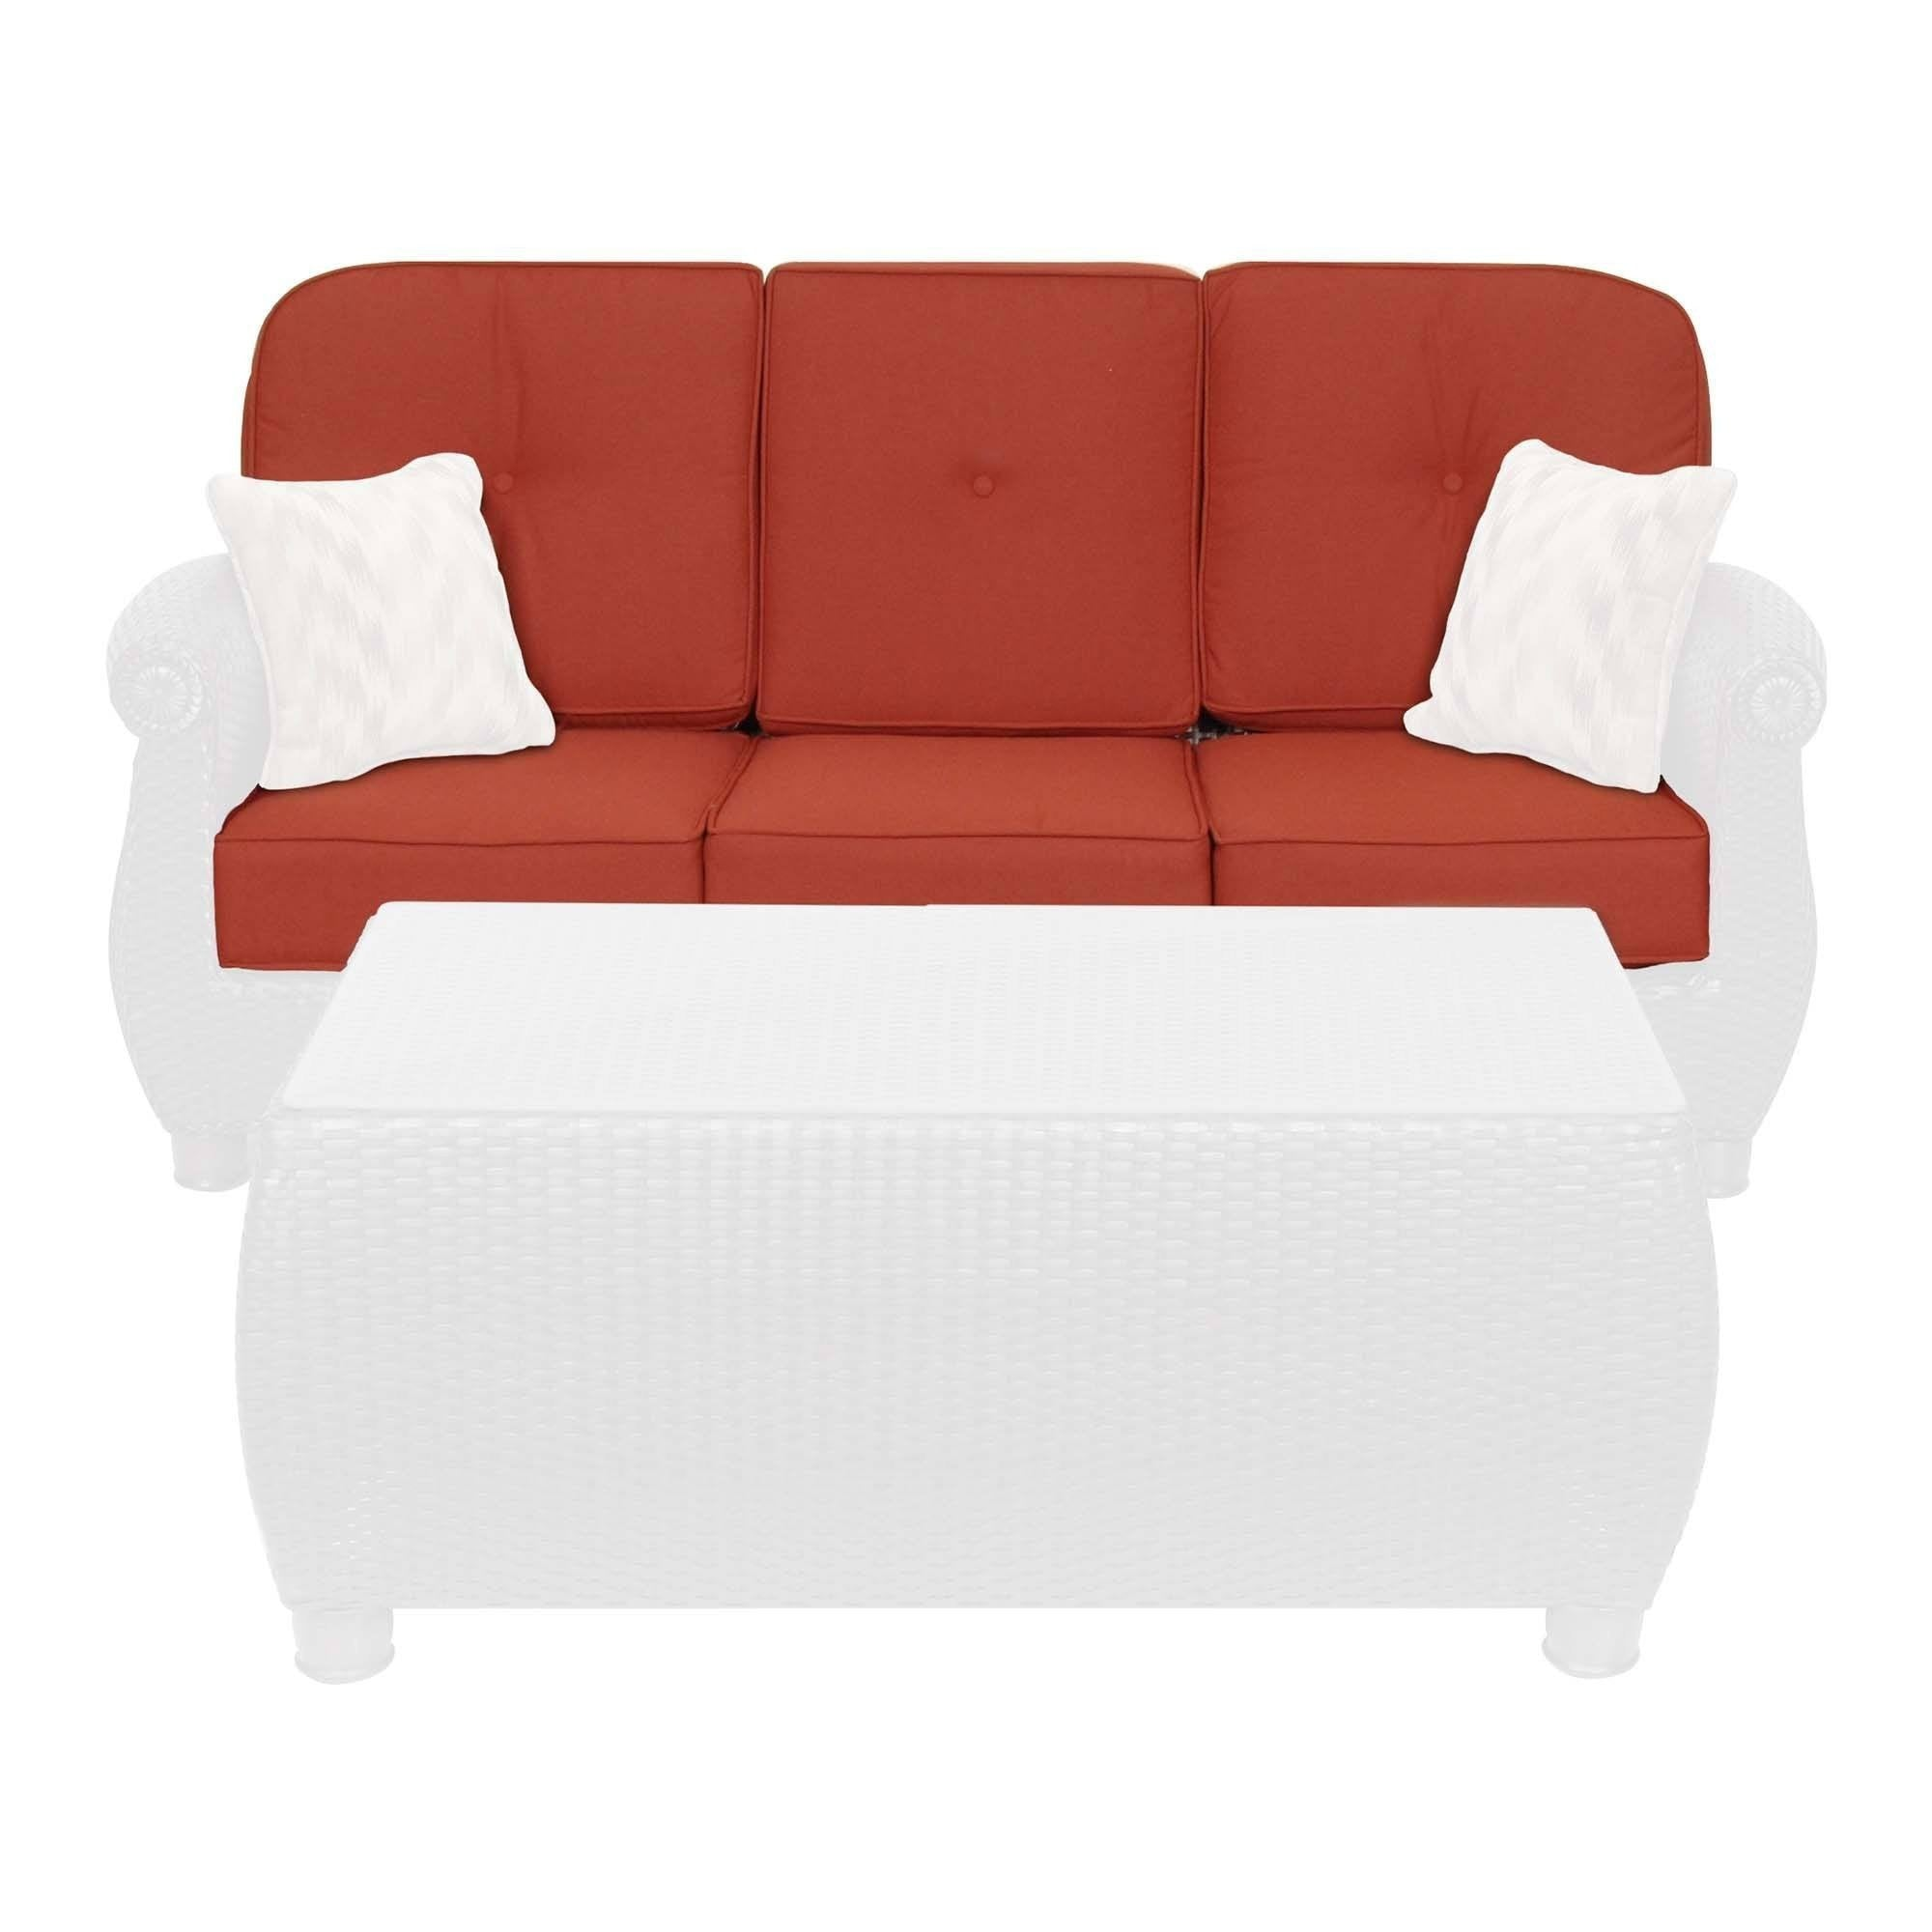 Replacement Cushions – La-Z-Boy Outdoor